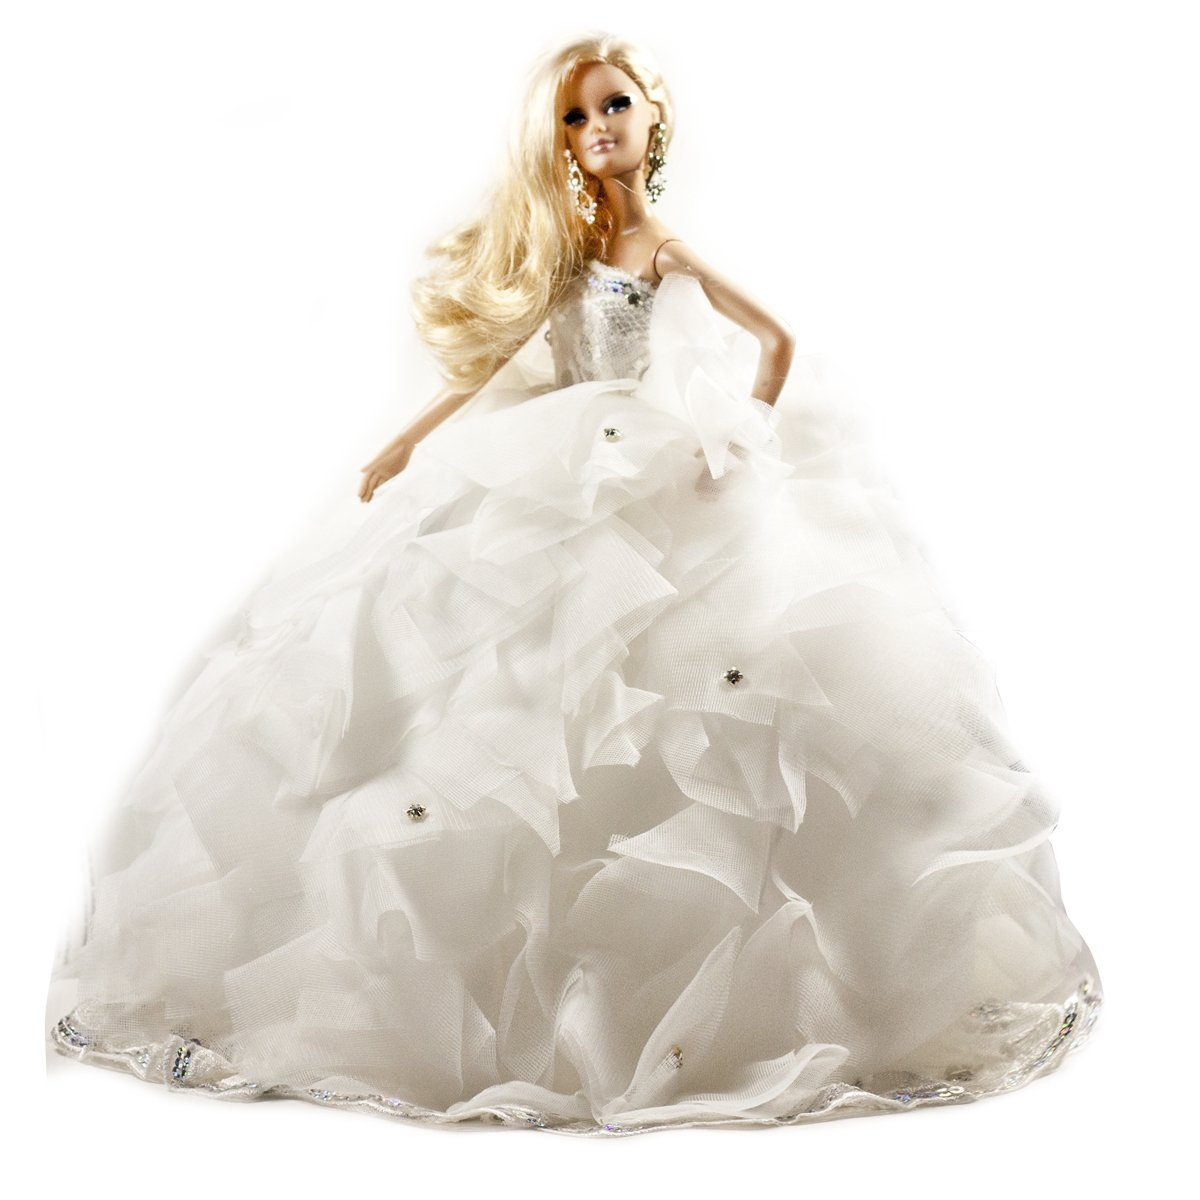 Barbie Softly Lush layered ruffles strapless lace tulle ballgown wedding dress w/ Silver Stones